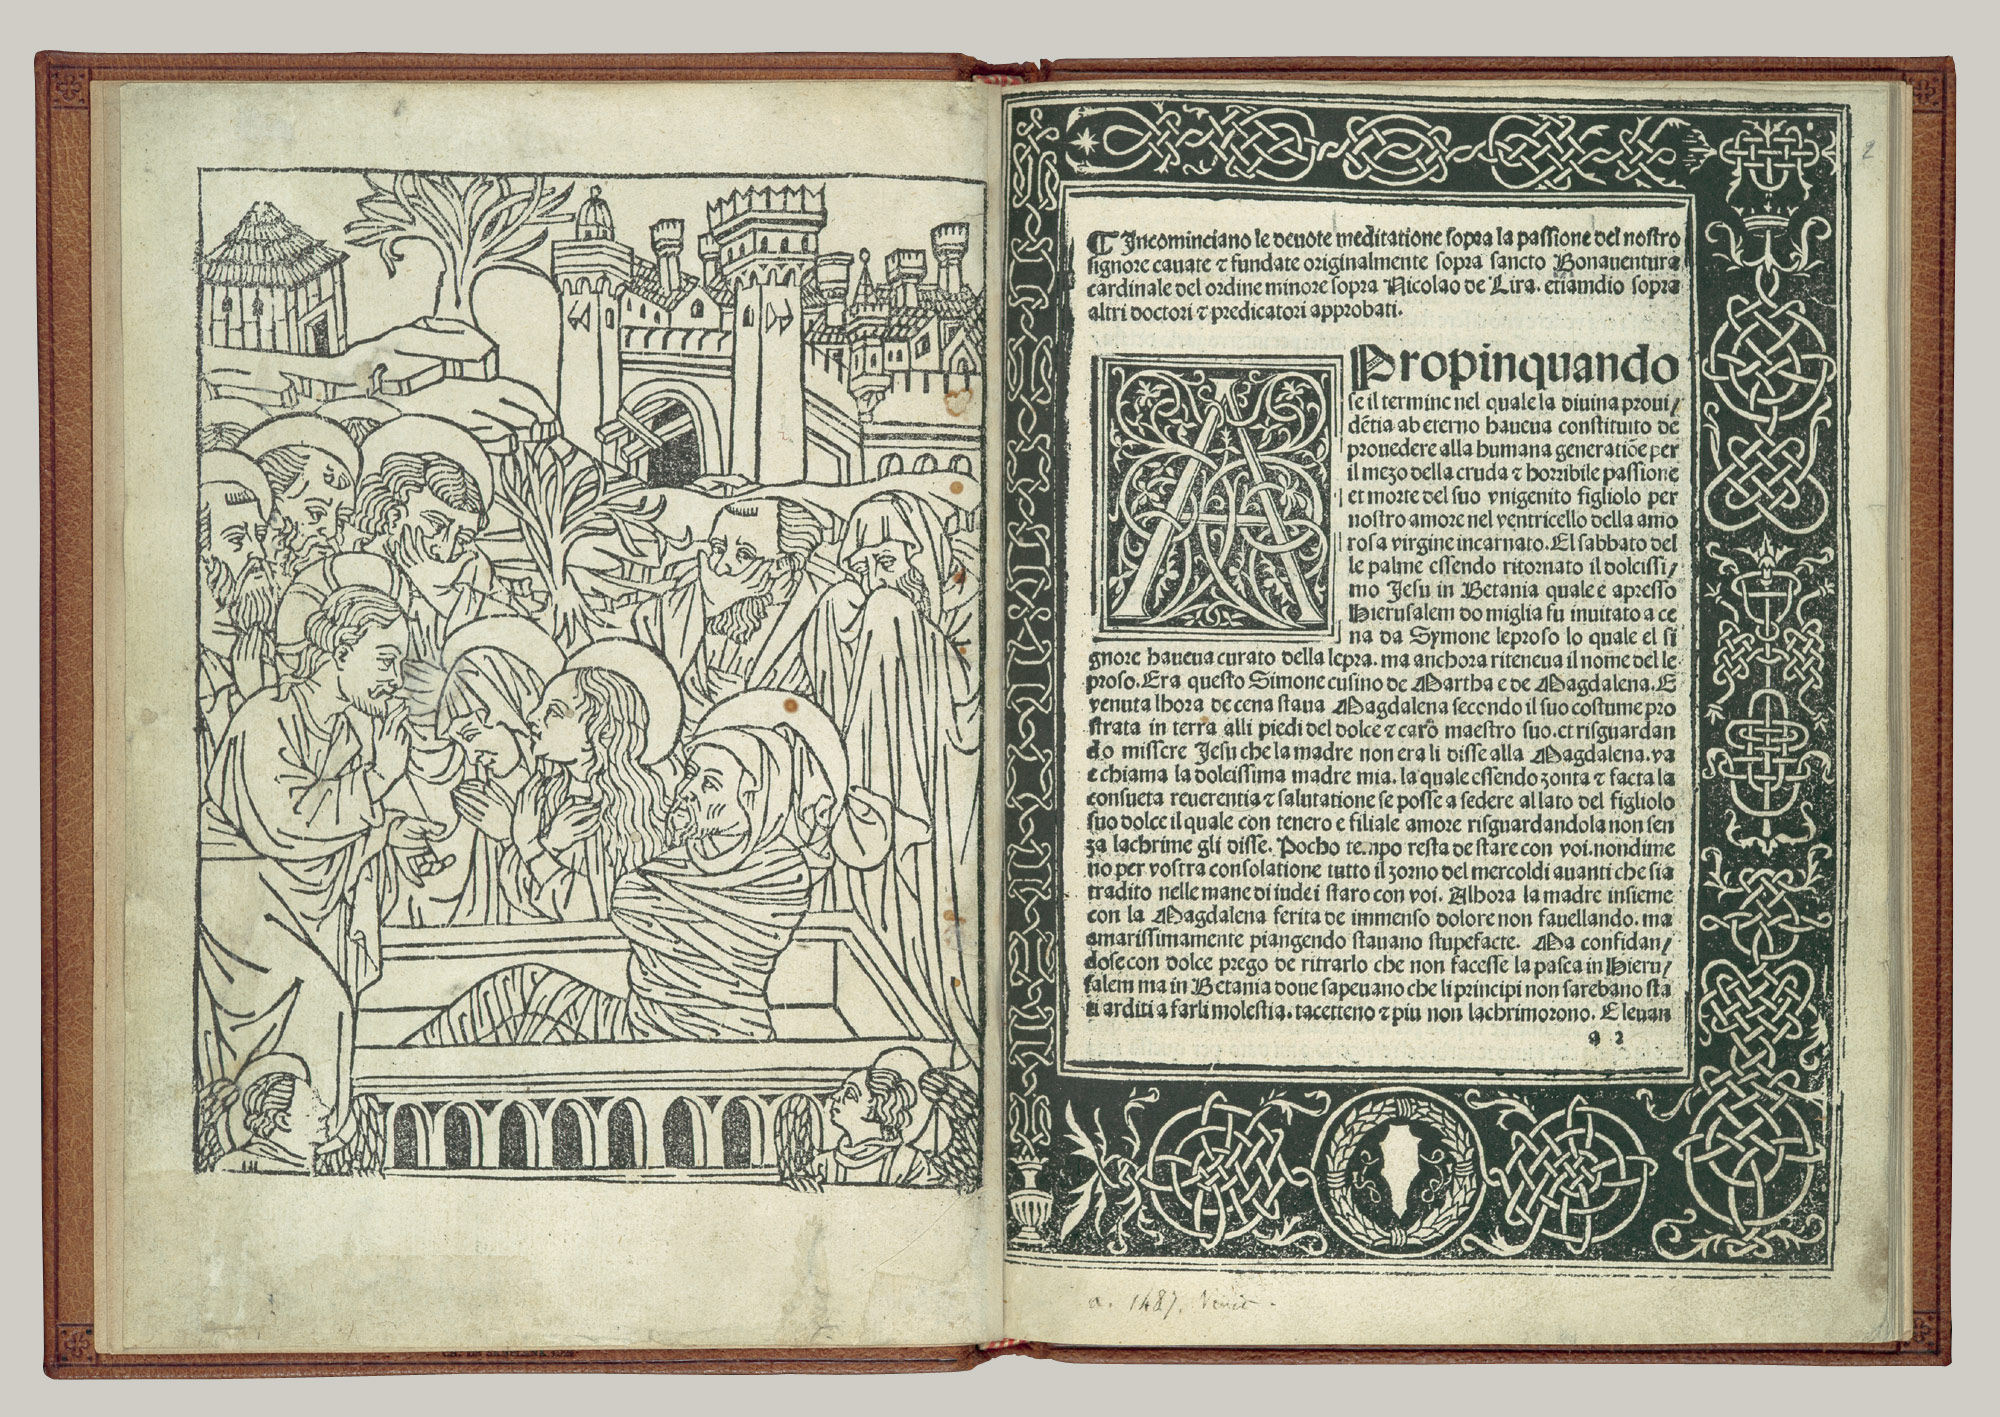 woodcut book illustration in renaissance the first le devote meditatione sopra la passione del nostro signore